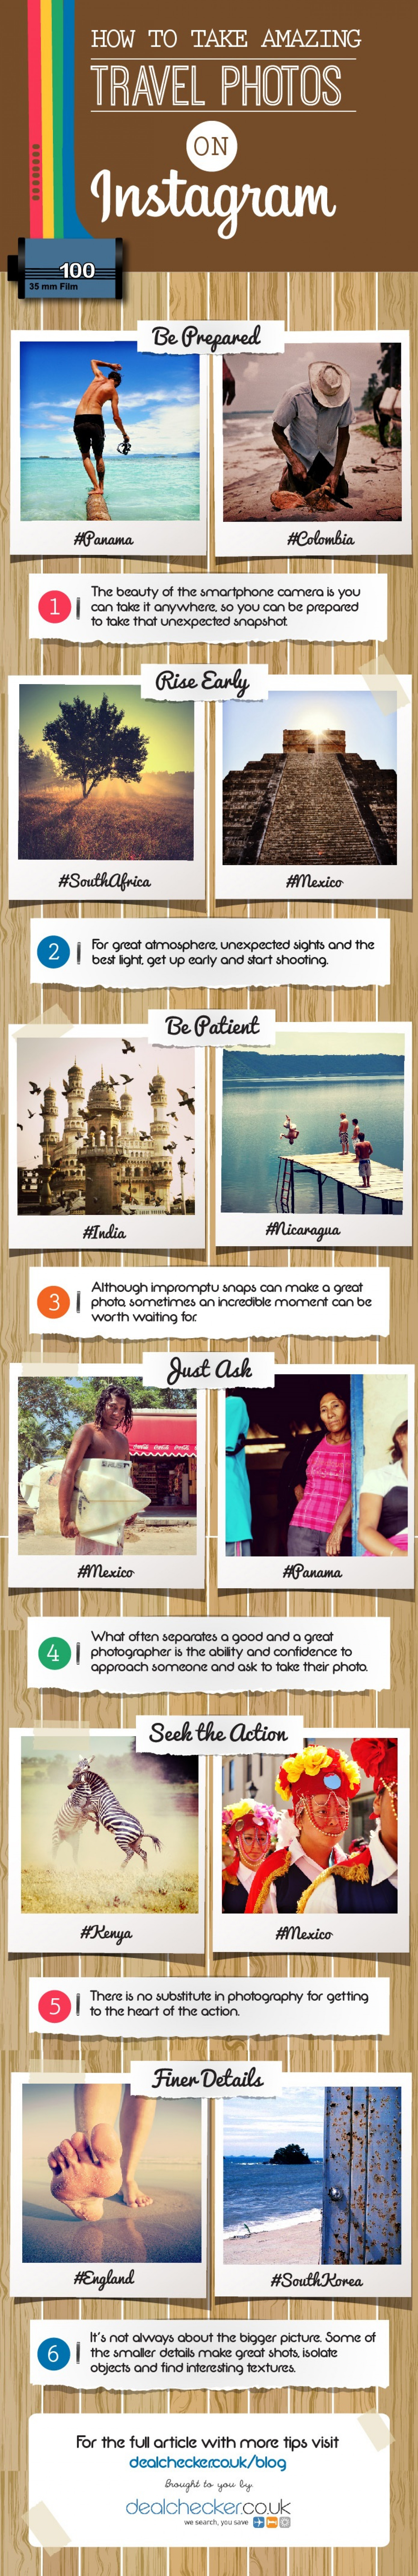 Top Tips for Instagram Travel Photography Infographic